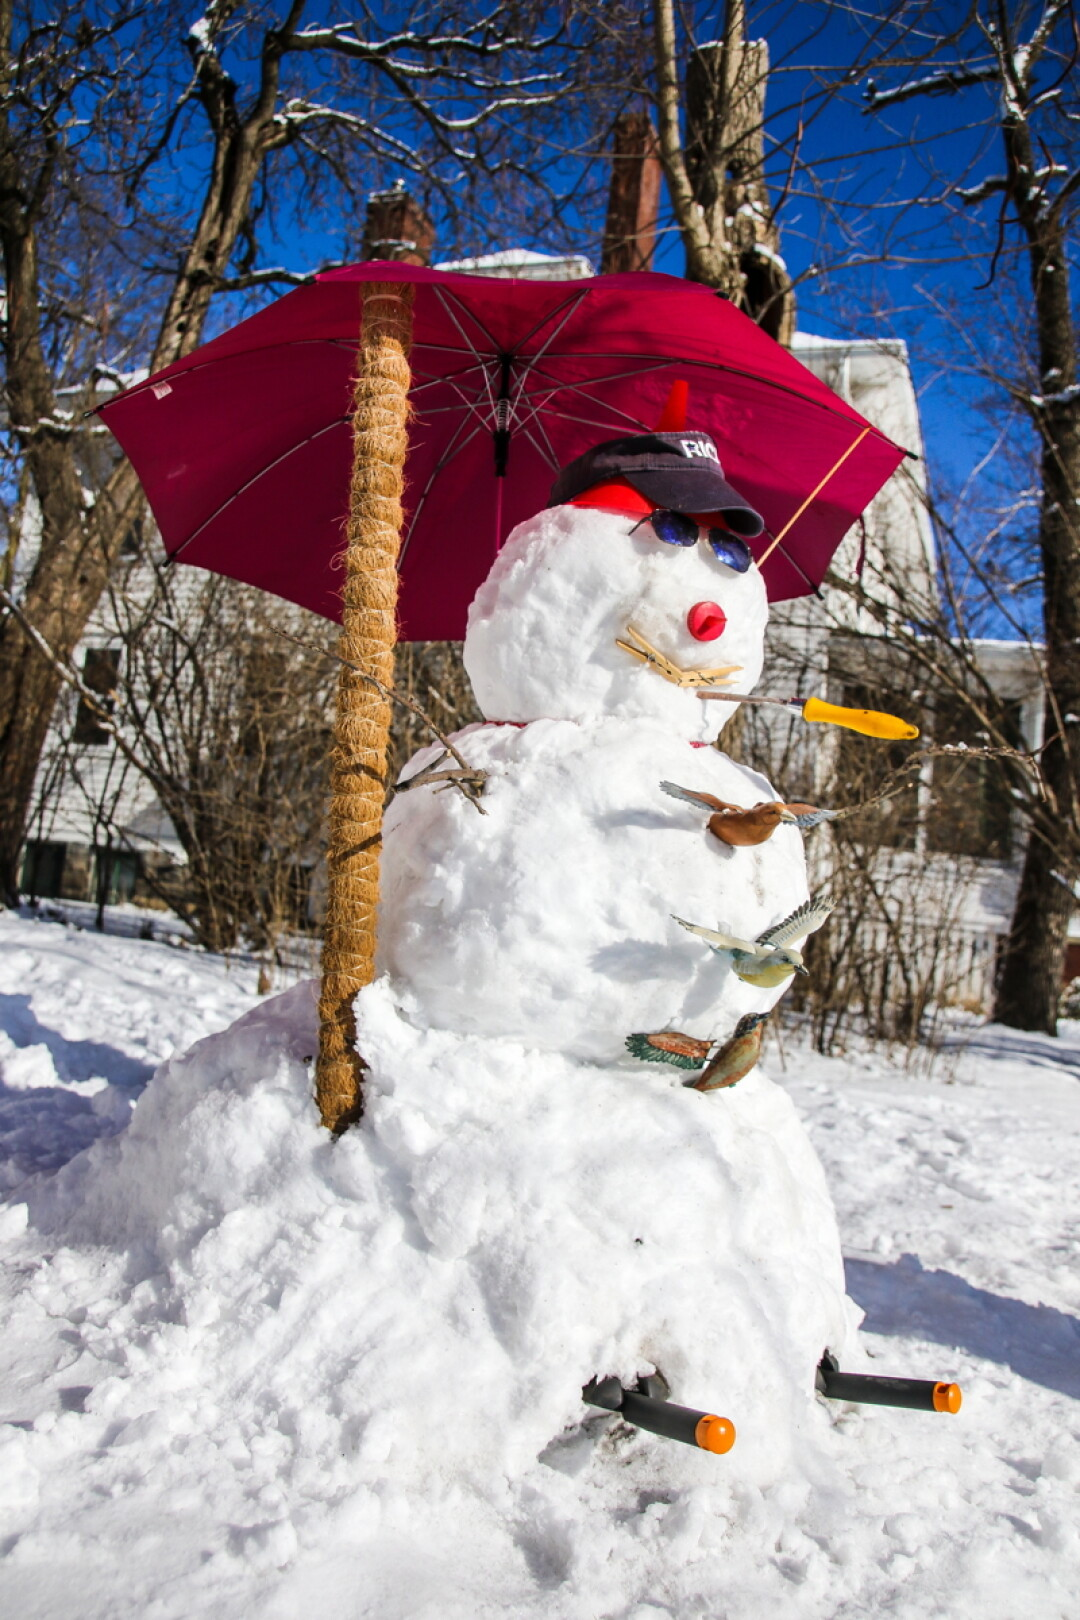 MADE IN THE SHADE. If the sun hasn't been too cruel, you'll still be able to find this delightful snowman on North Dewey Street in Eau Claire. Unexpected additions such as an umbrella and a small flock of birds really ramp up the whimsy on this guy.